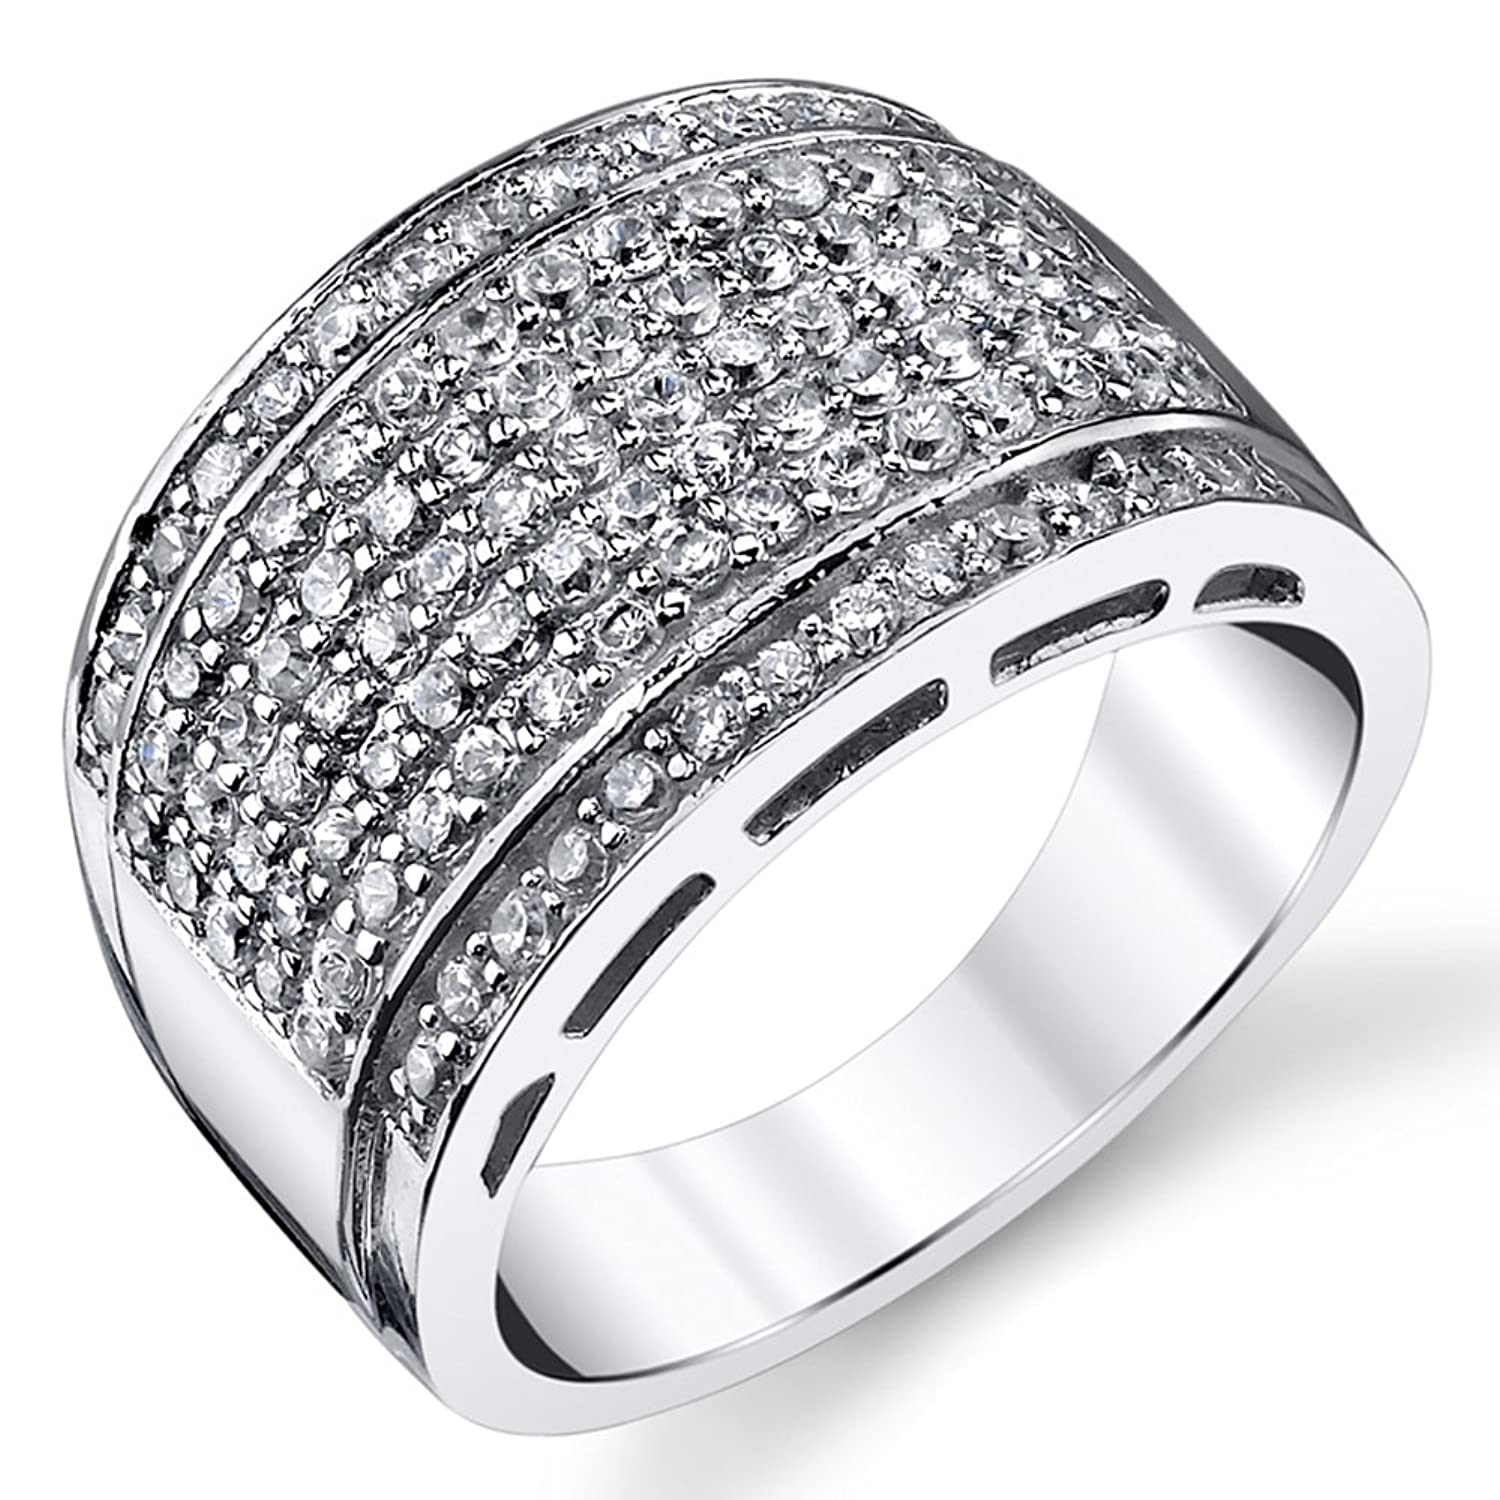 mg half white wedding brilliant gold maloney way band pave bands champagne chinchar around diamonds with